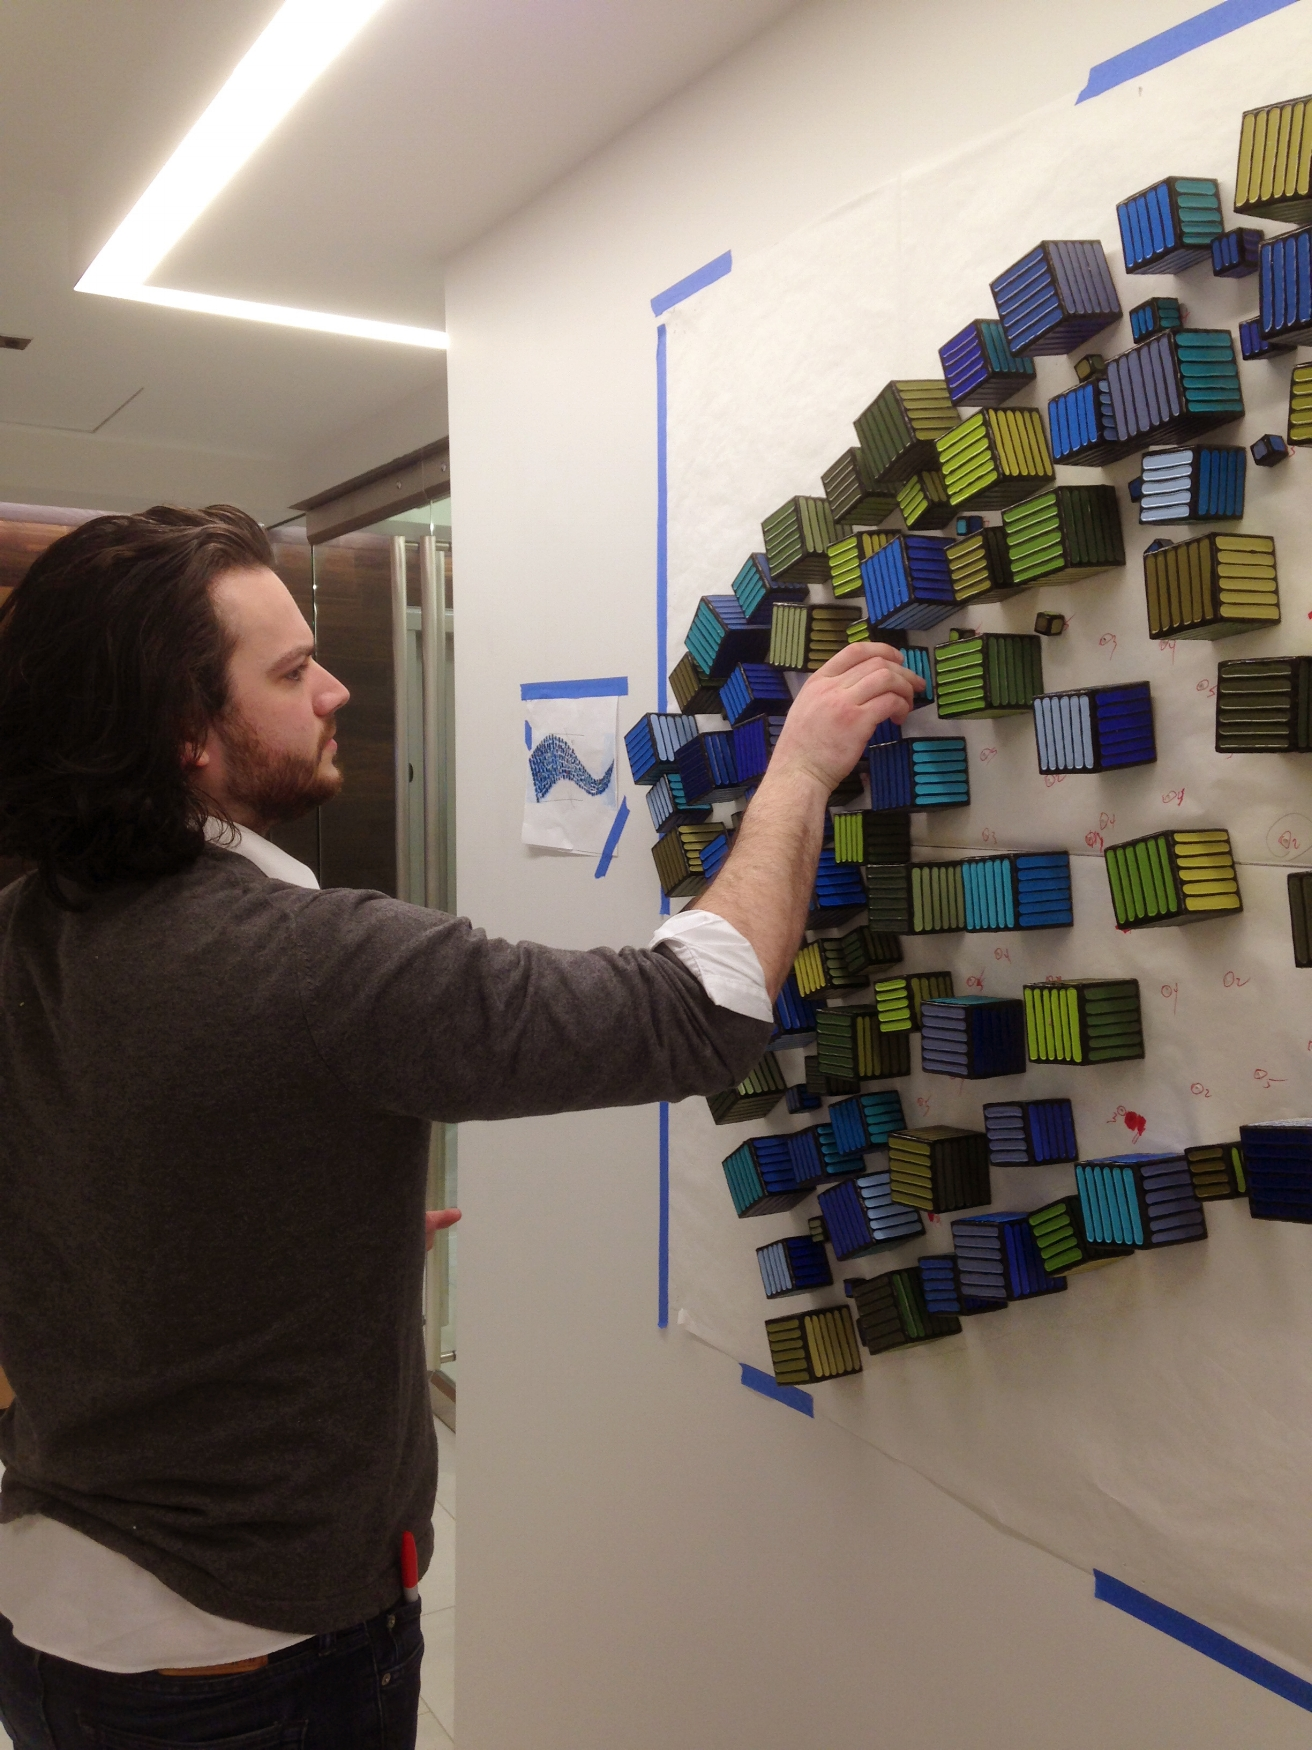 Just a few days into the job, Keenan is installing a complex wall sculpture for one of our clients in Bethesda.